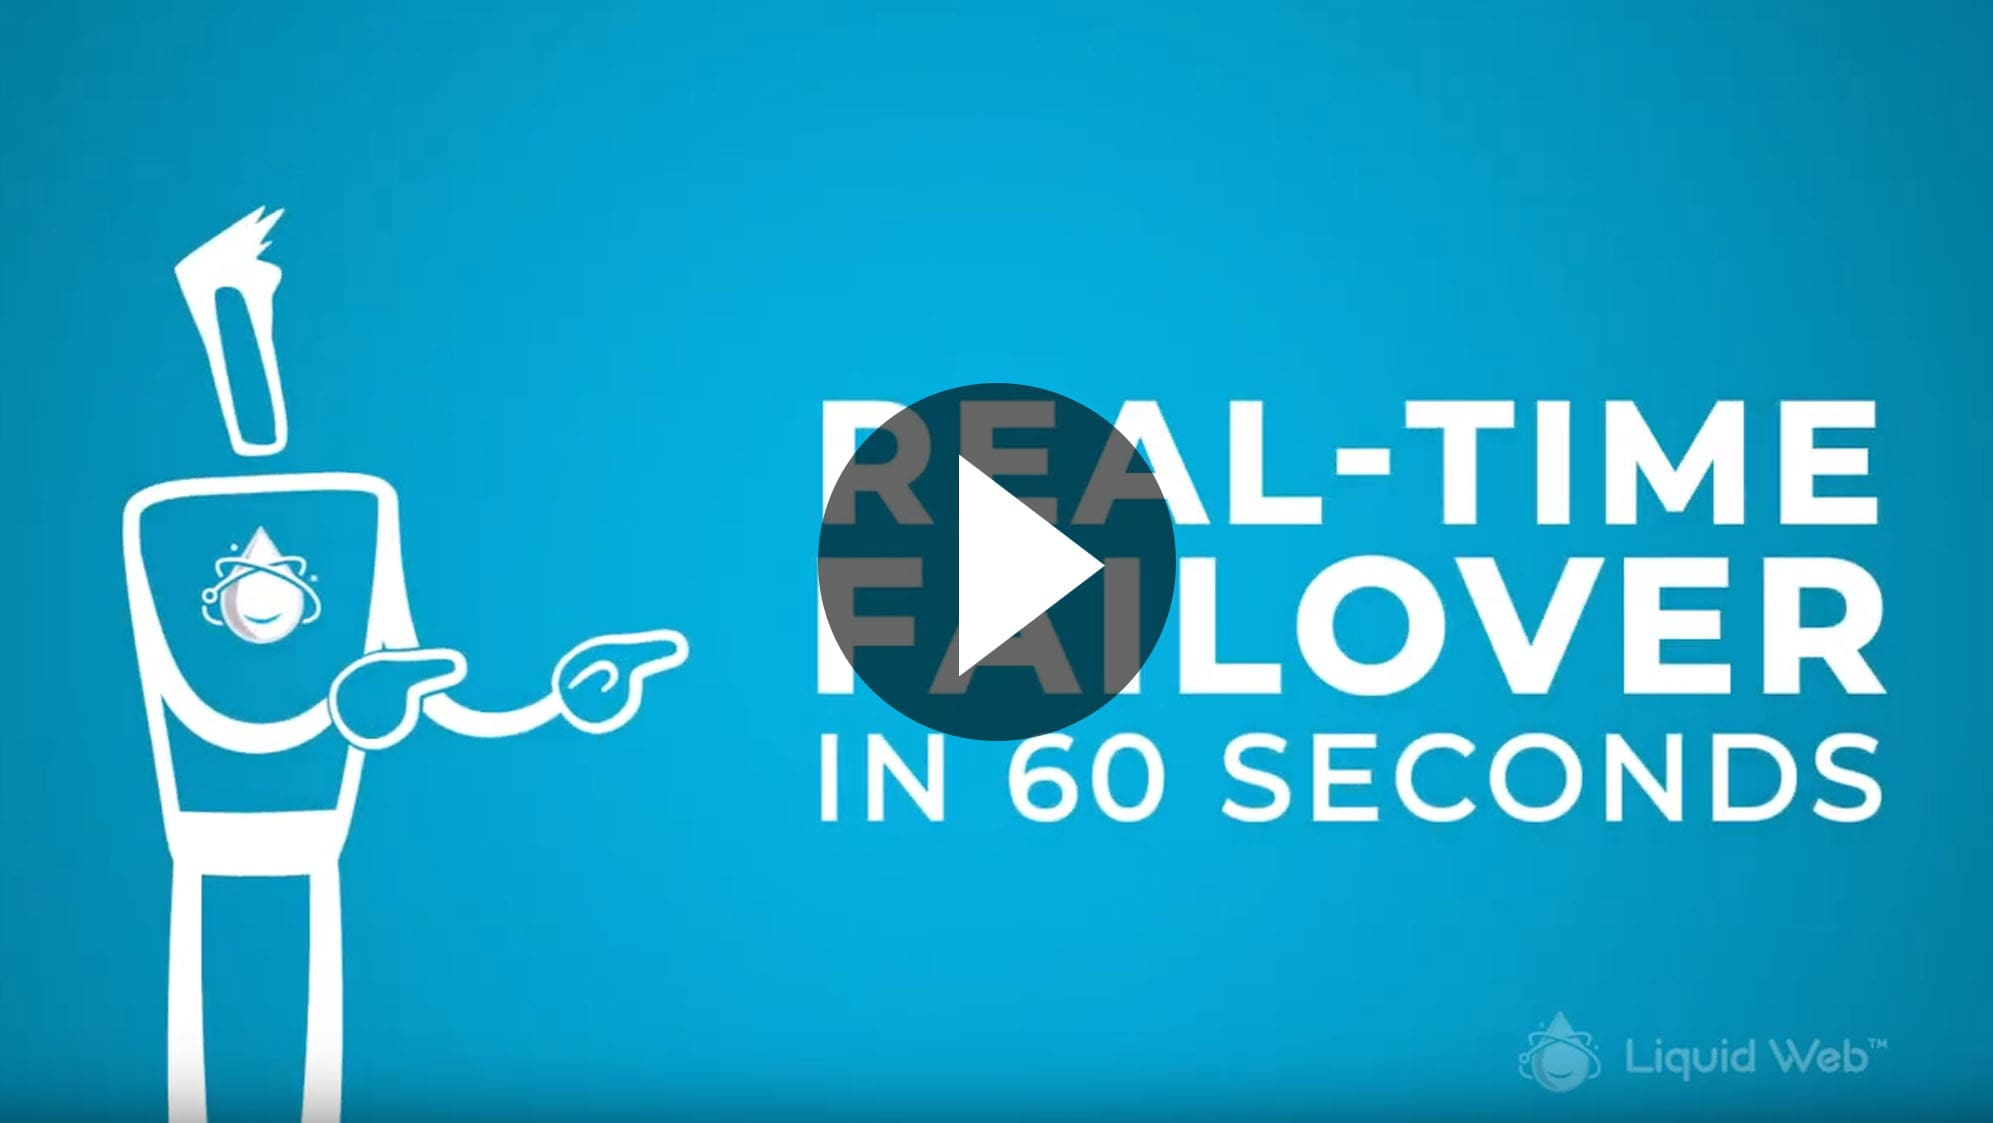 Real Time Failover in 60 Seconds